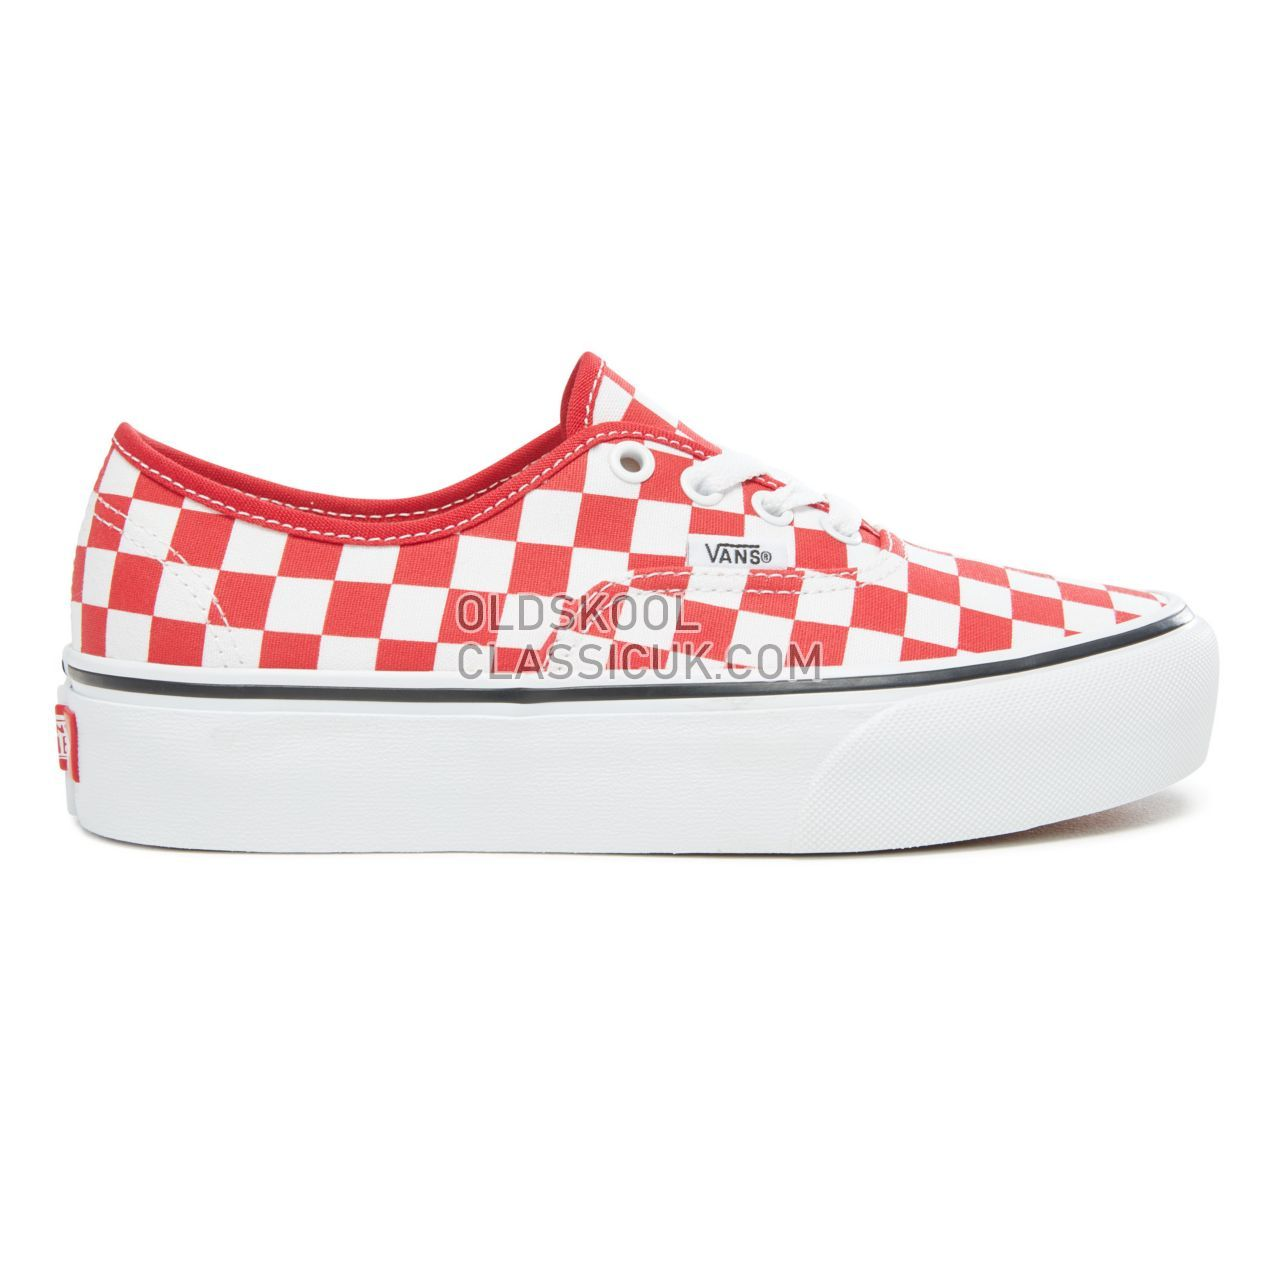 Vans Checkerboard Authentic Platform 2.0 Sneakers Womens (Checkerboard) Racing Red/True White VA3AV8S4E Shoes